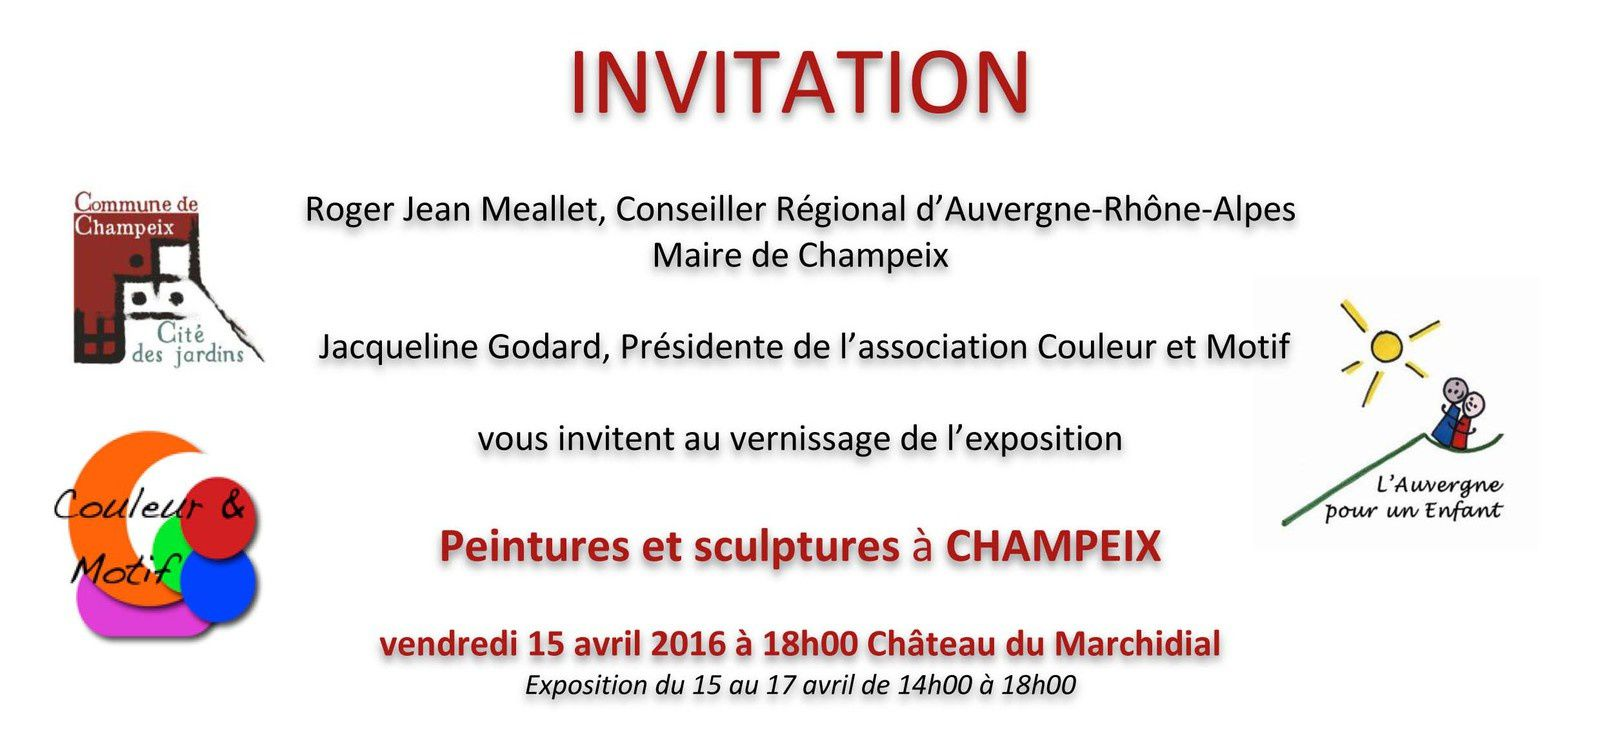 Vernissage le vendredi 15 avril 2016 à 18h